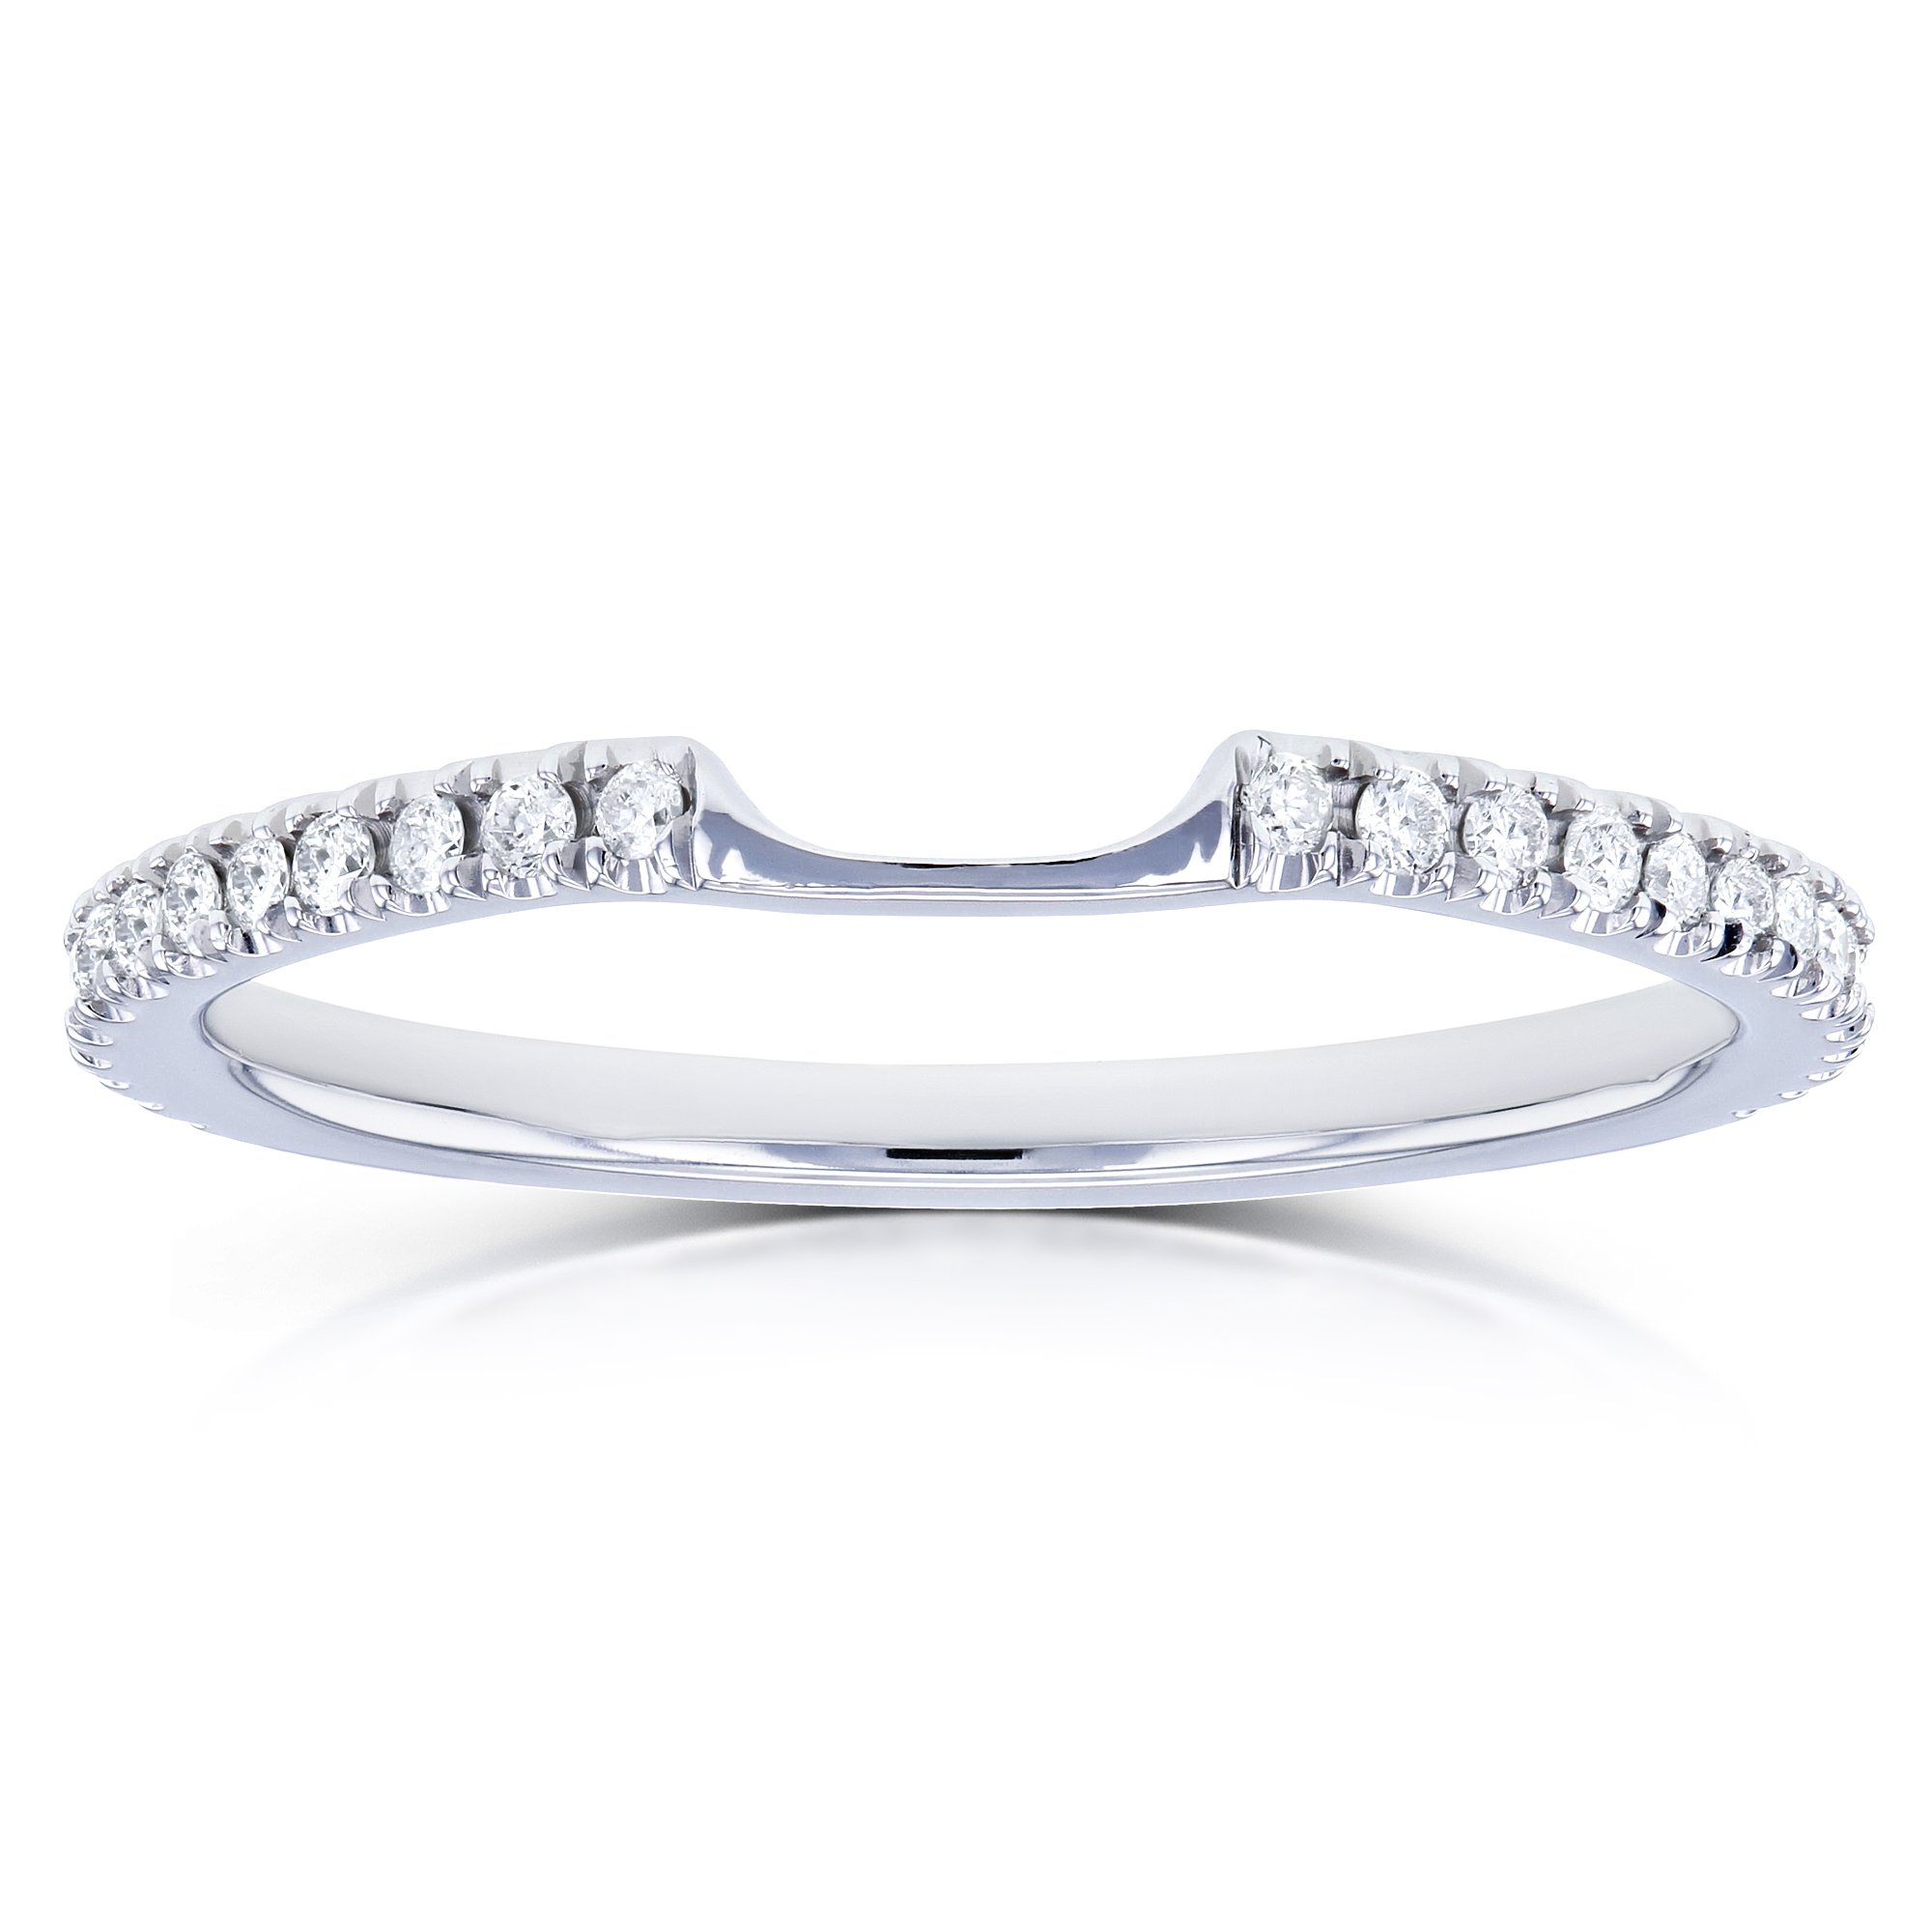 Notched Diamond Wedding Band 1/8 Carats (ctw) in 14k White Gold, Size 5.5, White Gold